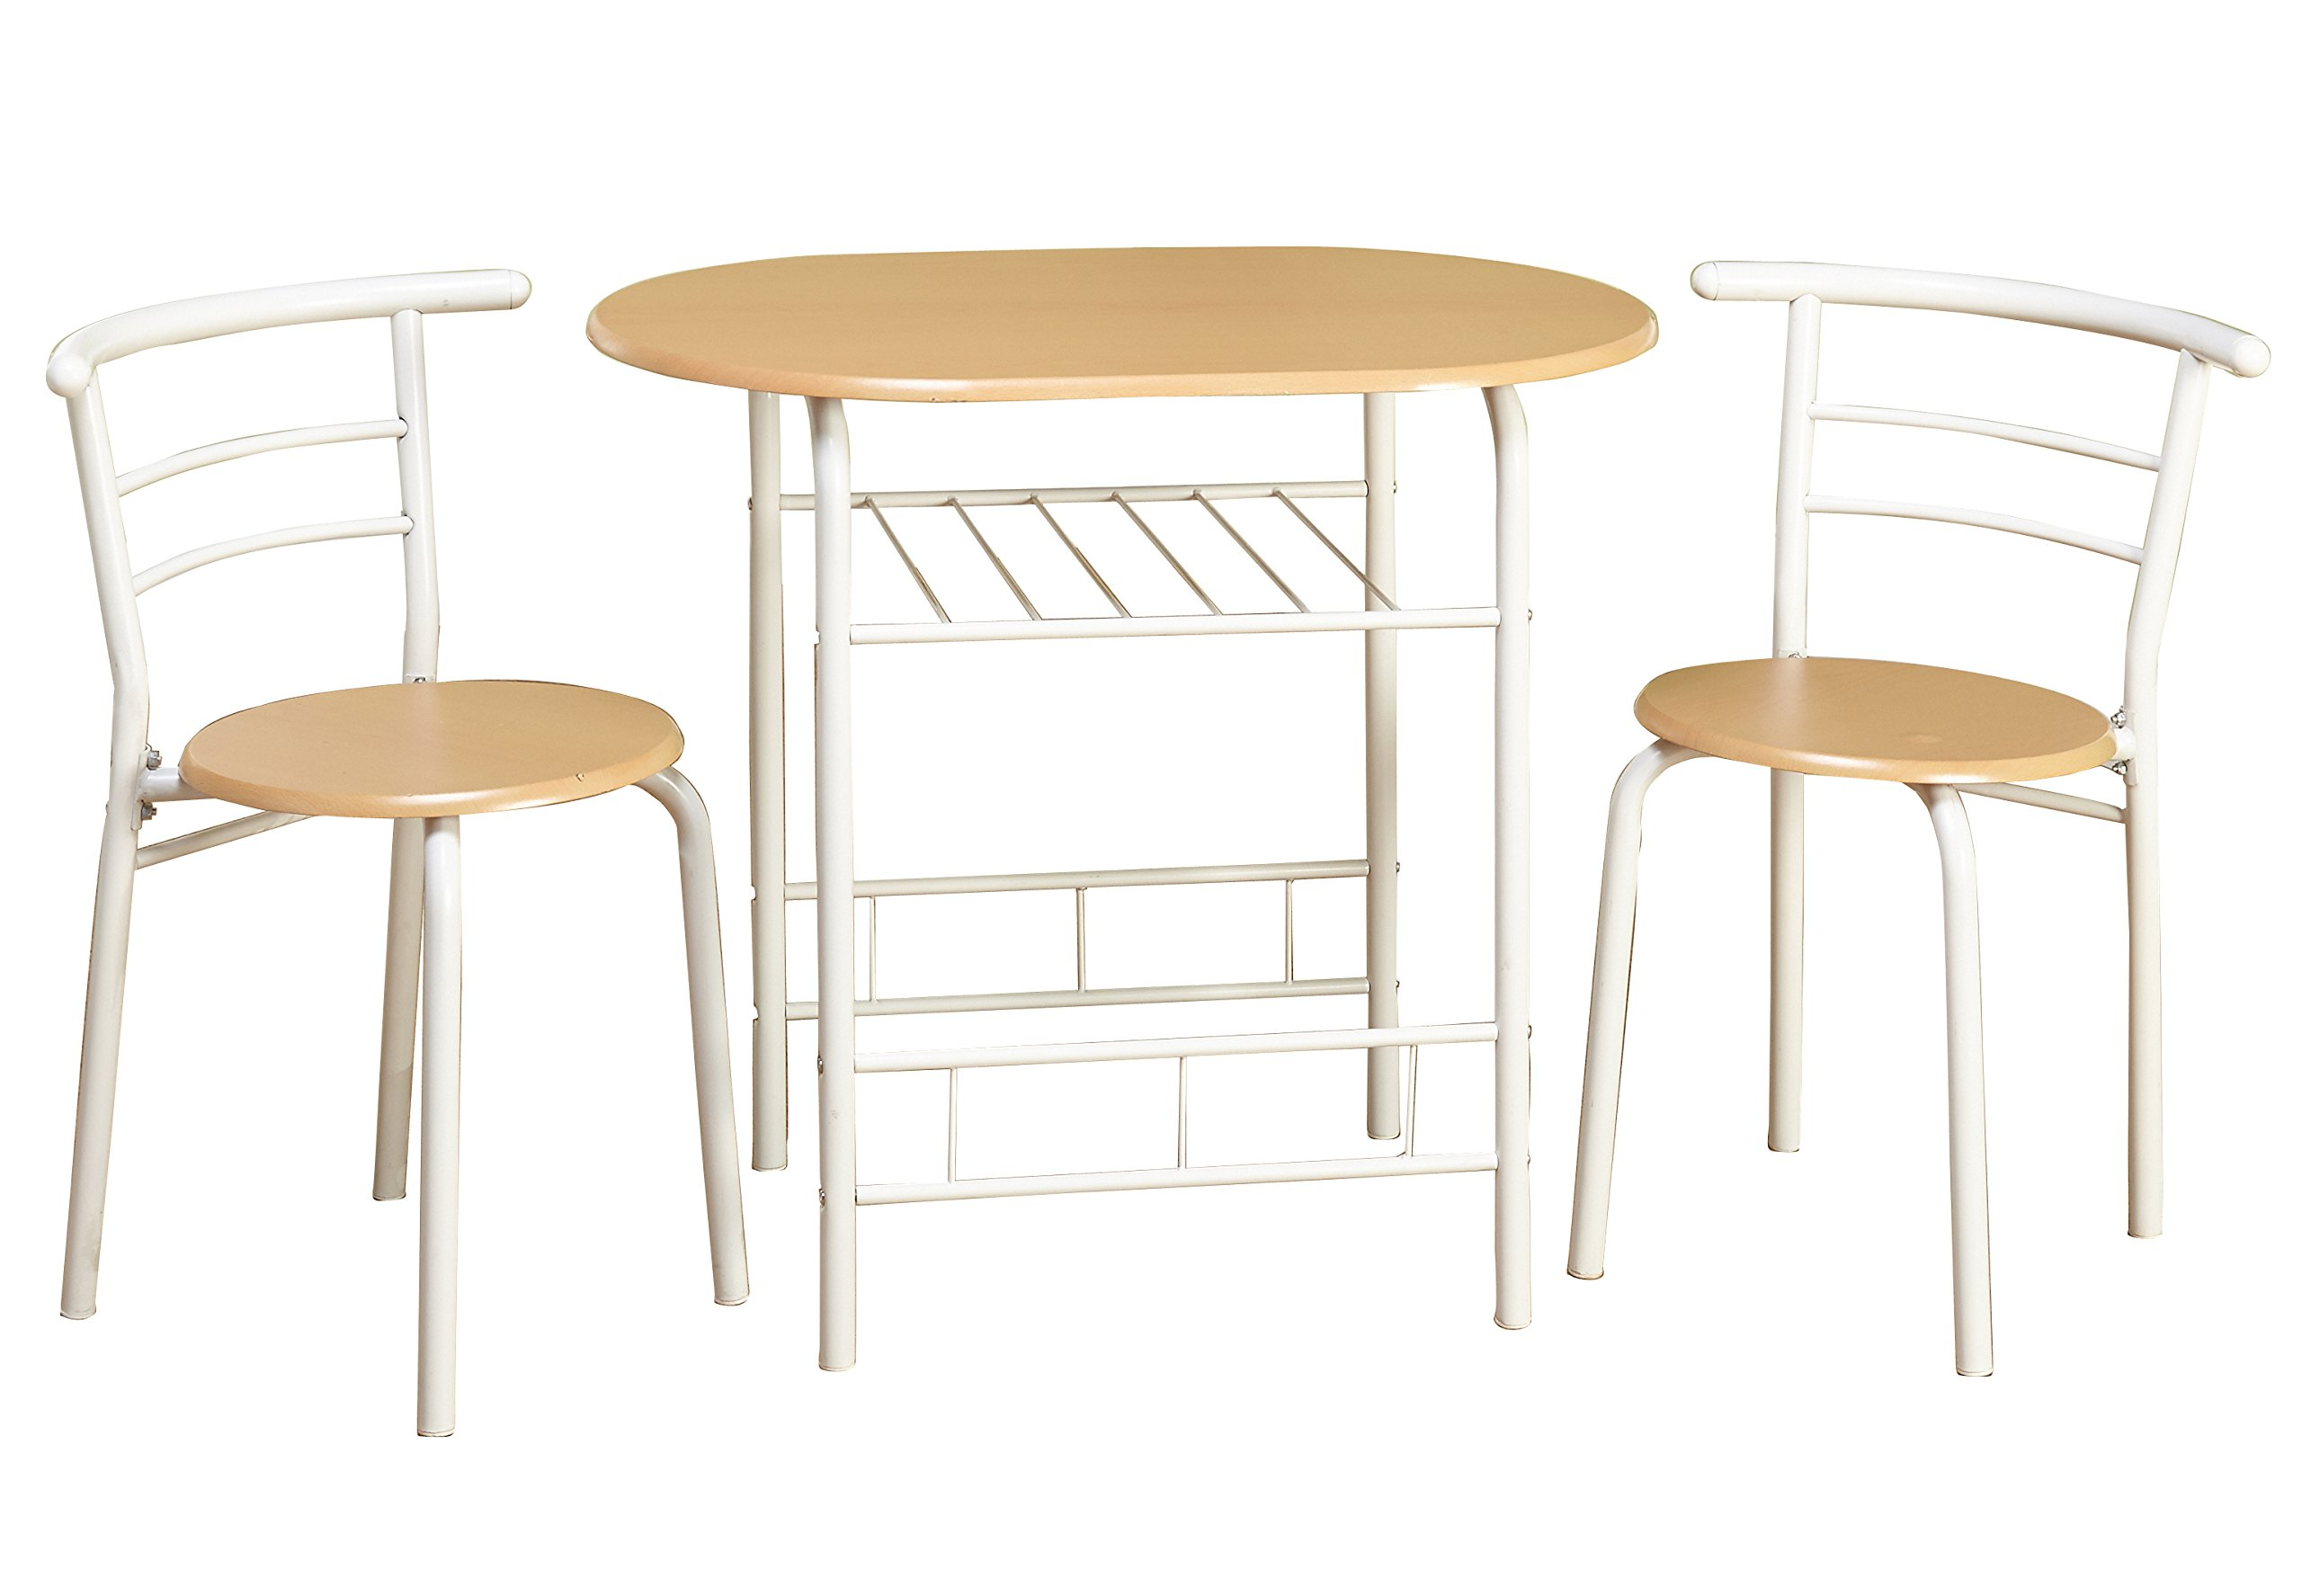 Target Marketing Systems 3 Piece Two-Toned  Bistro Dining Set with 2 Mid-Back Chairs and 1 Round Pedestal Dining Table, White/Natural by Target Marketing Systems